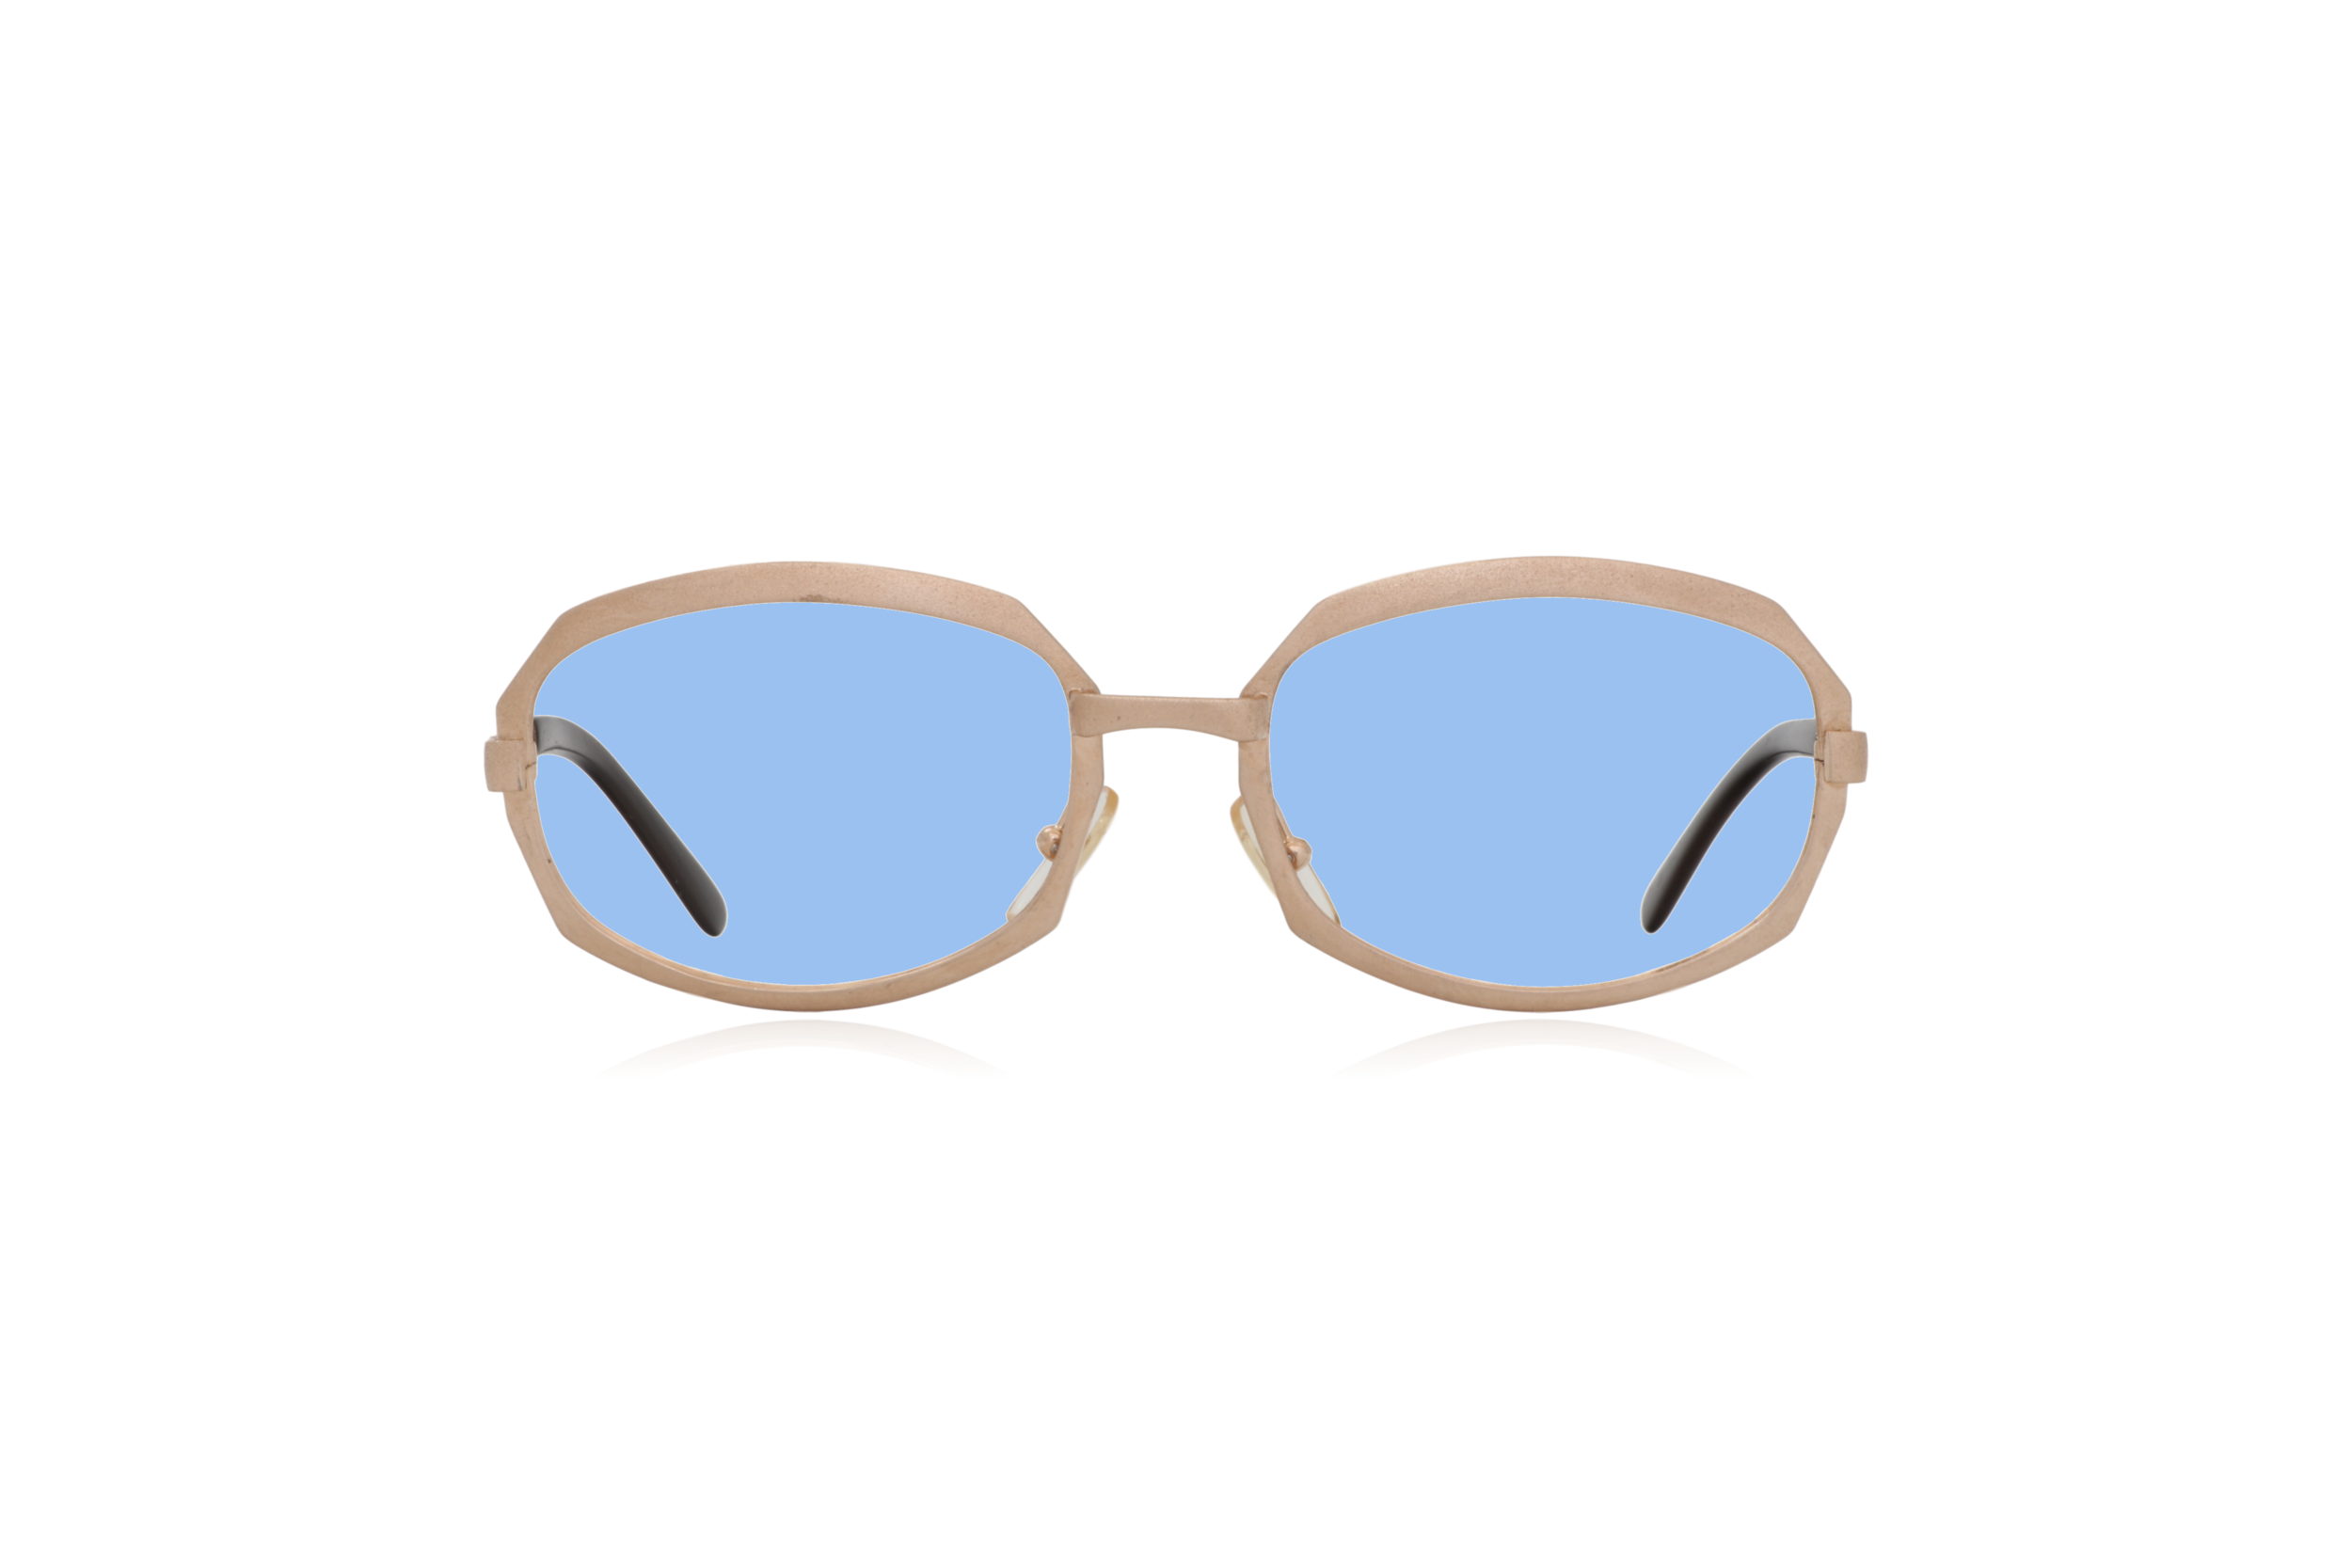 Peep Eyewear, Vintage Glasses, Gold Metal, Vicky, Cahours De Virgile, Paris, Front, Blue.png